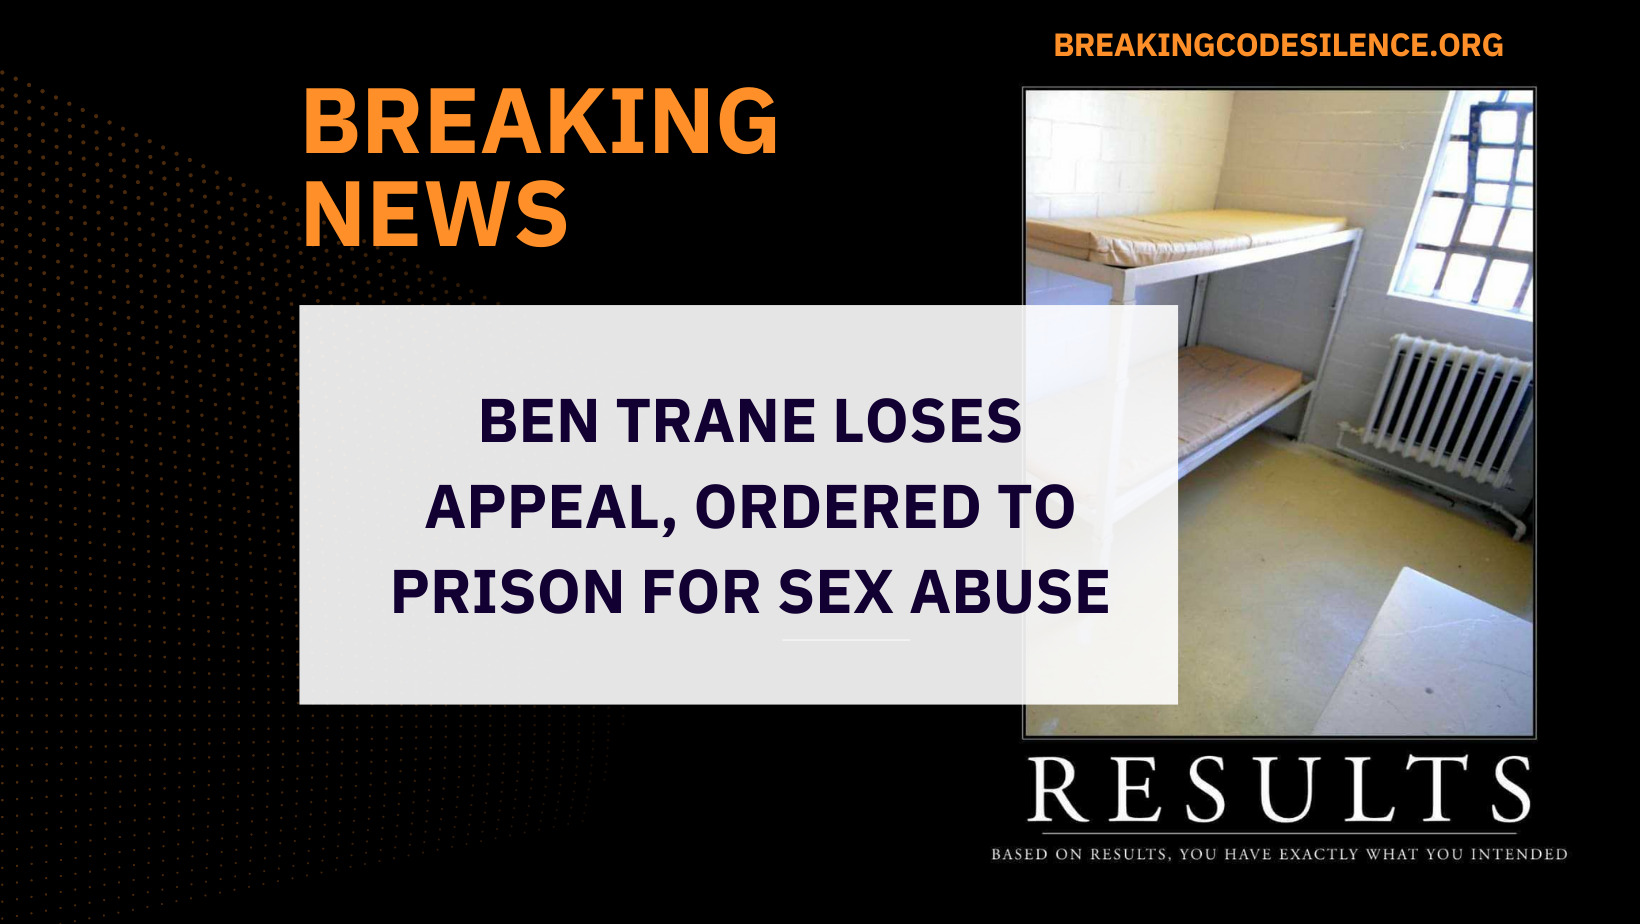 Ben Trane Loses Appeal, Ordered to Prison for Sex Abuse